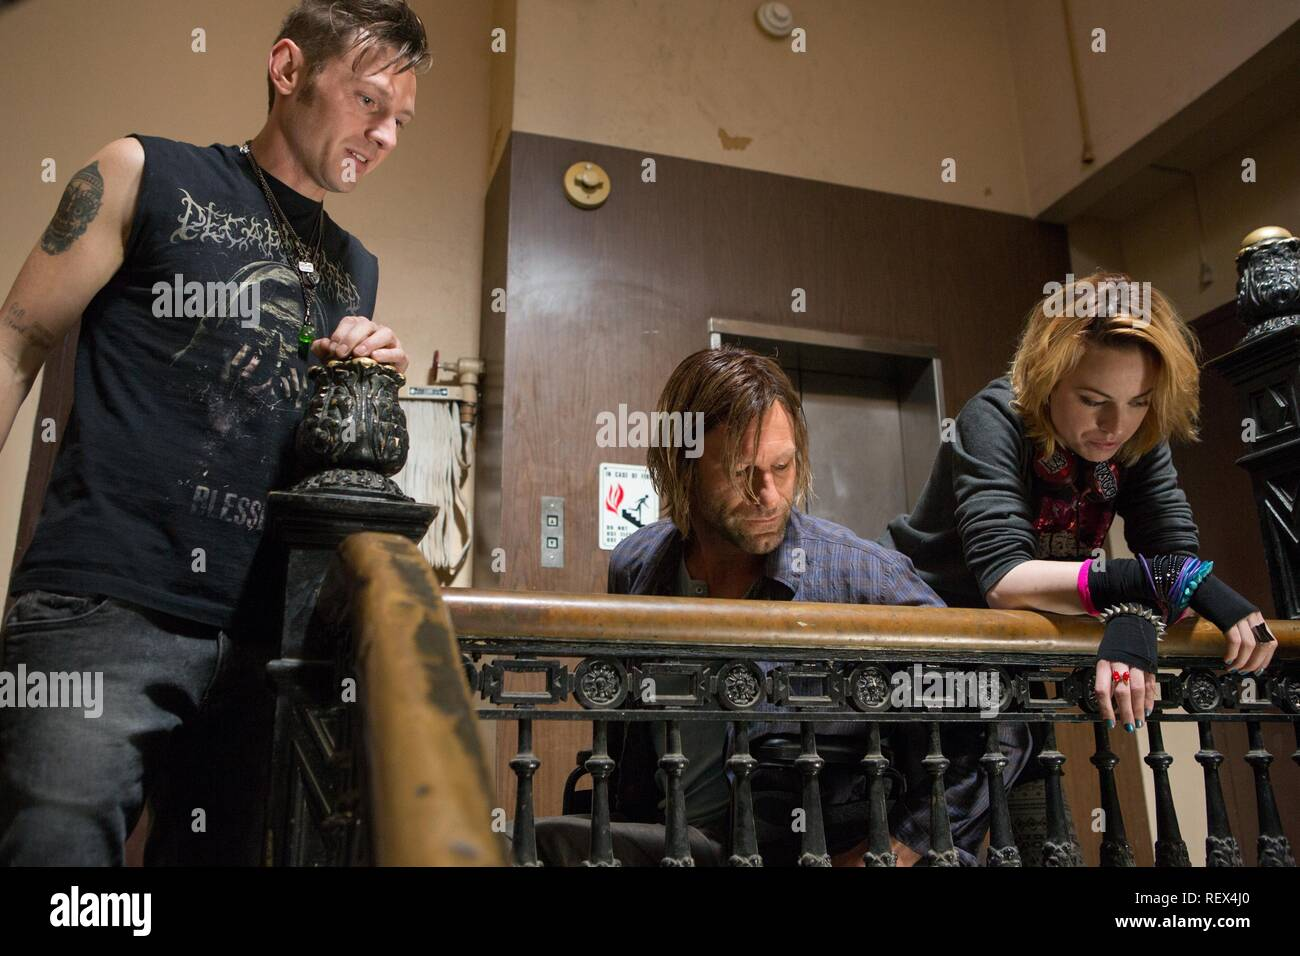 Keir O Donnell Aaron Eckhart Emily Jackson Incarnate 2016 Stock Photo Alamy We had the chance to talk to keir o'donnell and anne son from 'my generation'. https www alamy com keir odonnell aaron eckhart emily jackson incarnate 2016 image232914360 html